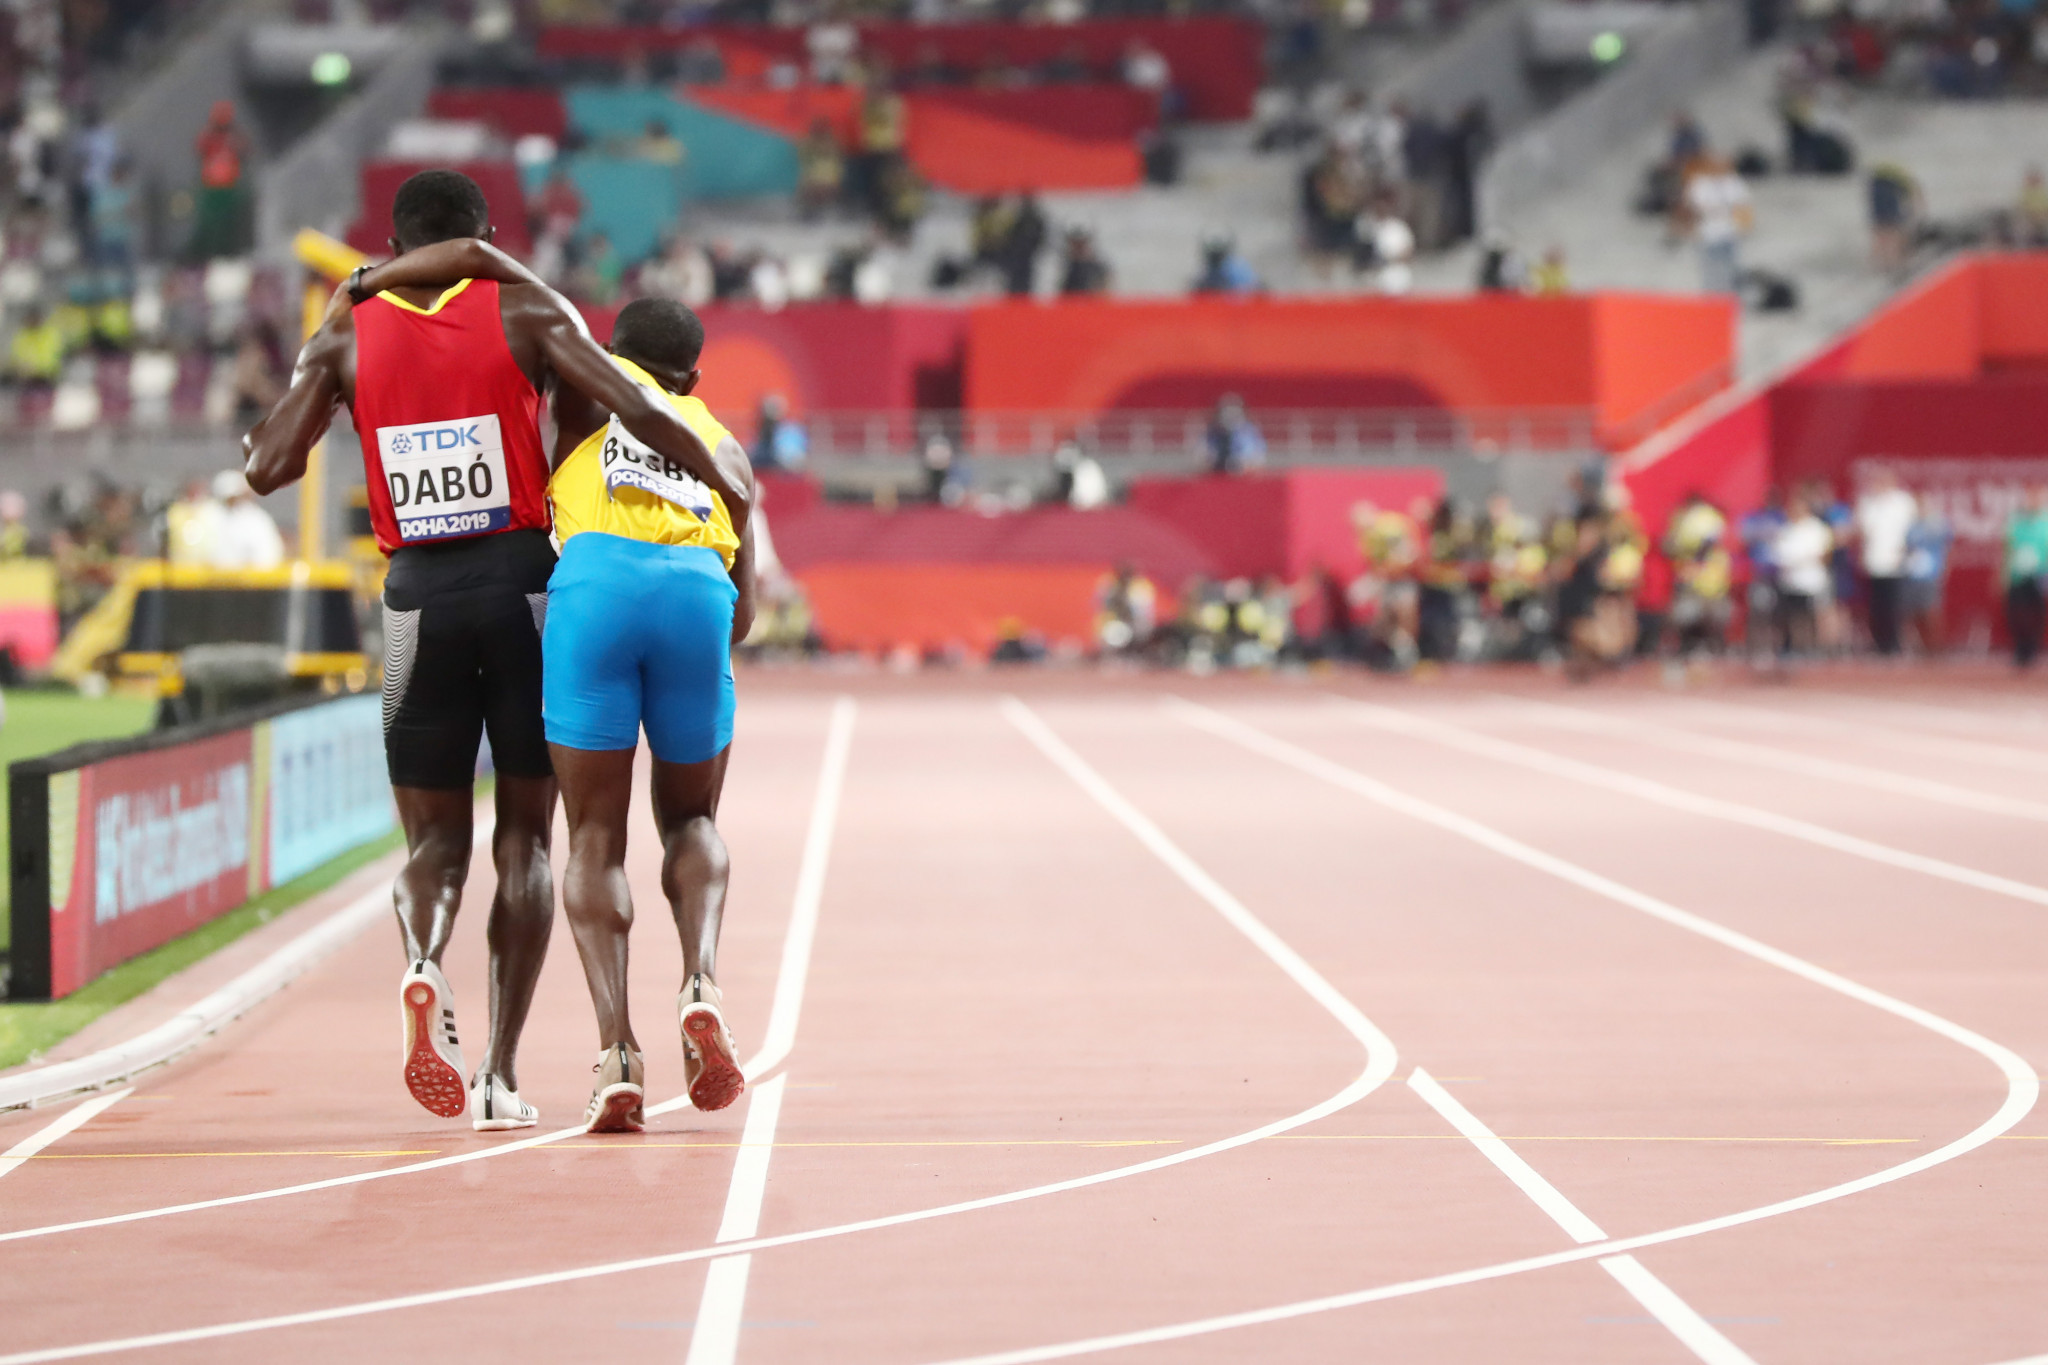 Guinea-Bissau's Braima Suncar Dabo stopped near the end of his 5,000m heat to help Aruba's Jonathan Busby, who had collapsed with exhaustion ©Getty Images